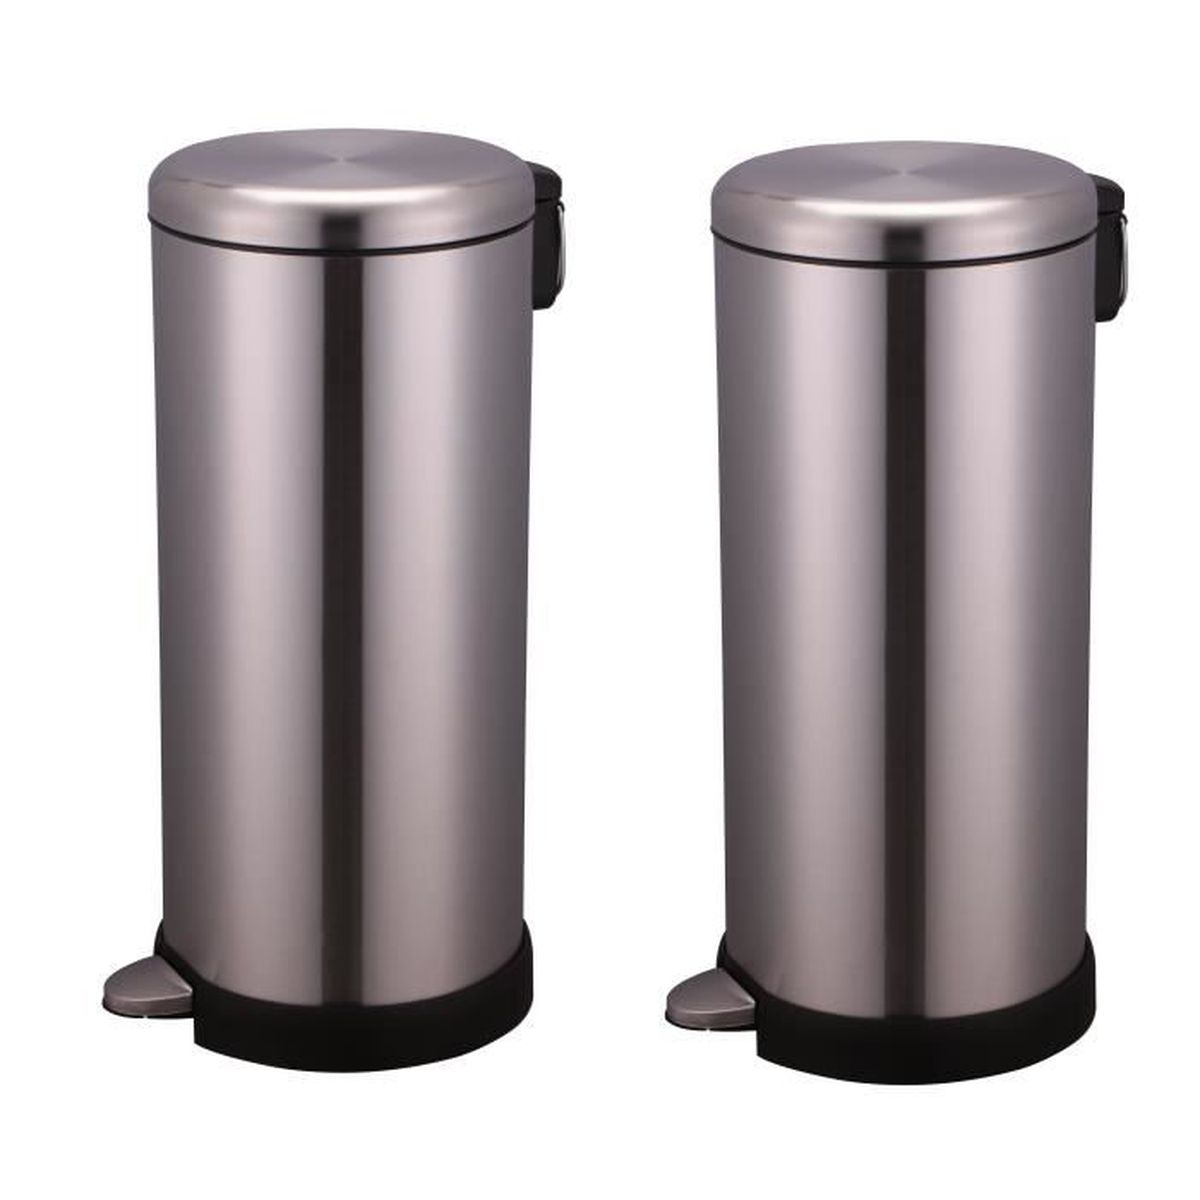 lot de 2 poubelles de cuisine 30 litres inox bross syst me fermeture silencieuse achat. Black Bedroom Furniture Sets. Home Design Ideas